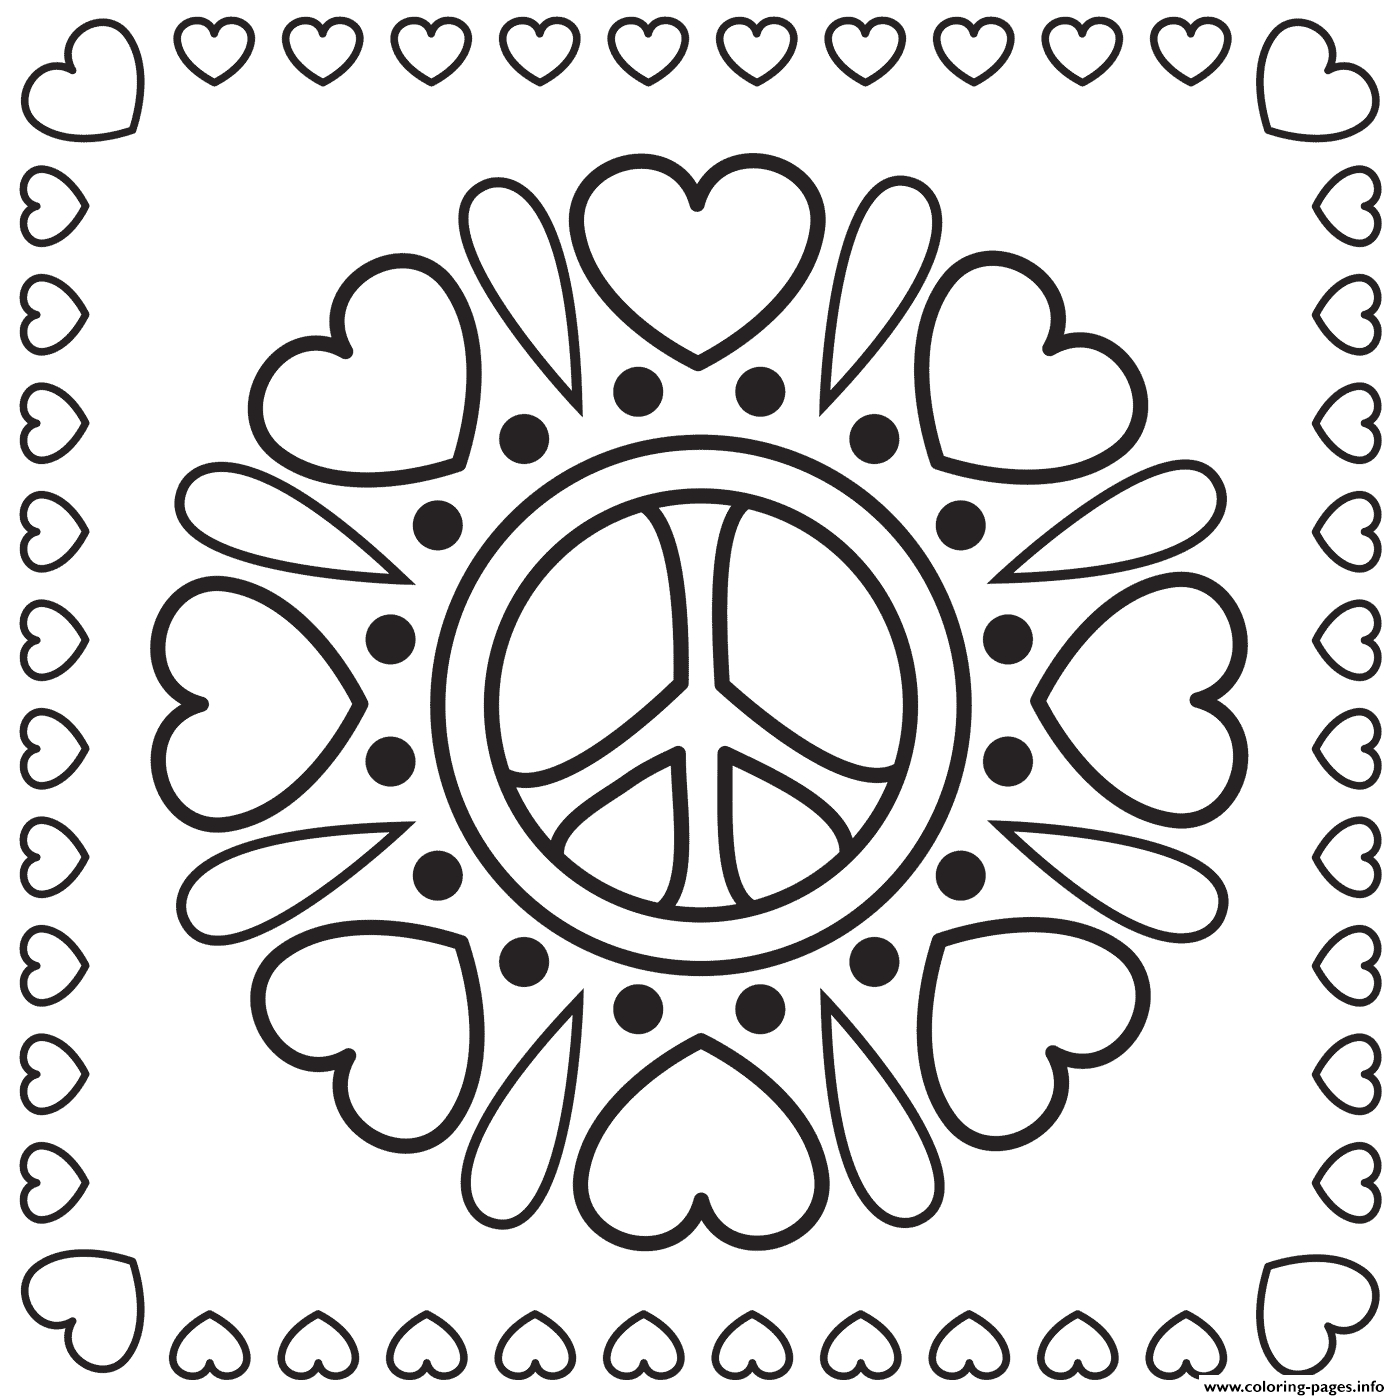 Coloring Pages Of Hearts and Peace Signs Hearts and Peace Signs Coloring Pages Printable